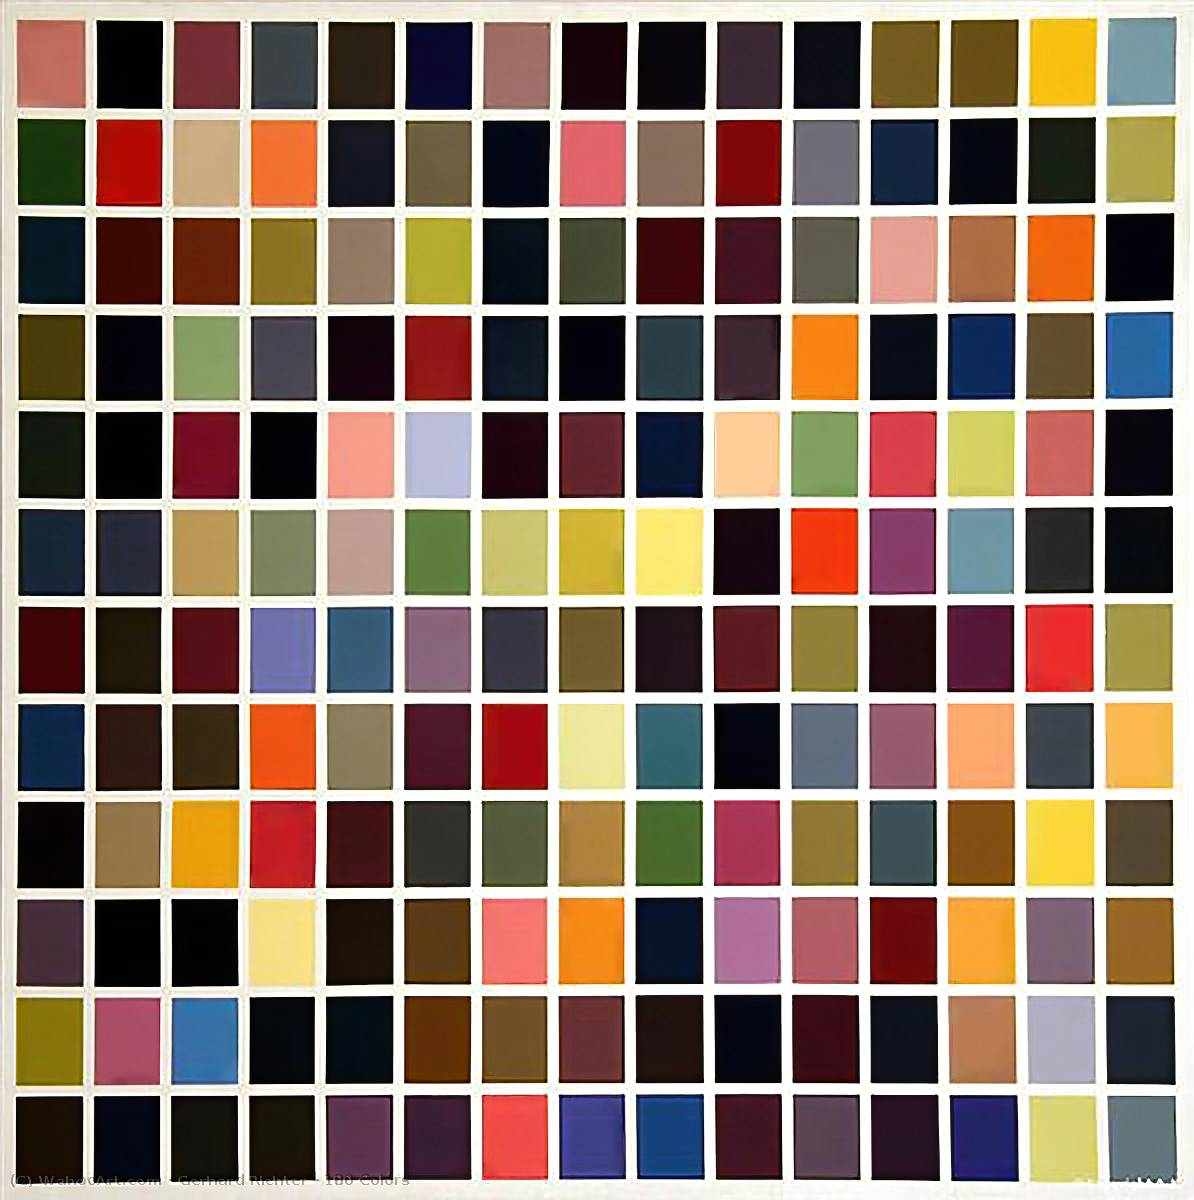 180 Colors by Gerhard Richter | Art Reproduction | WahooArt.com